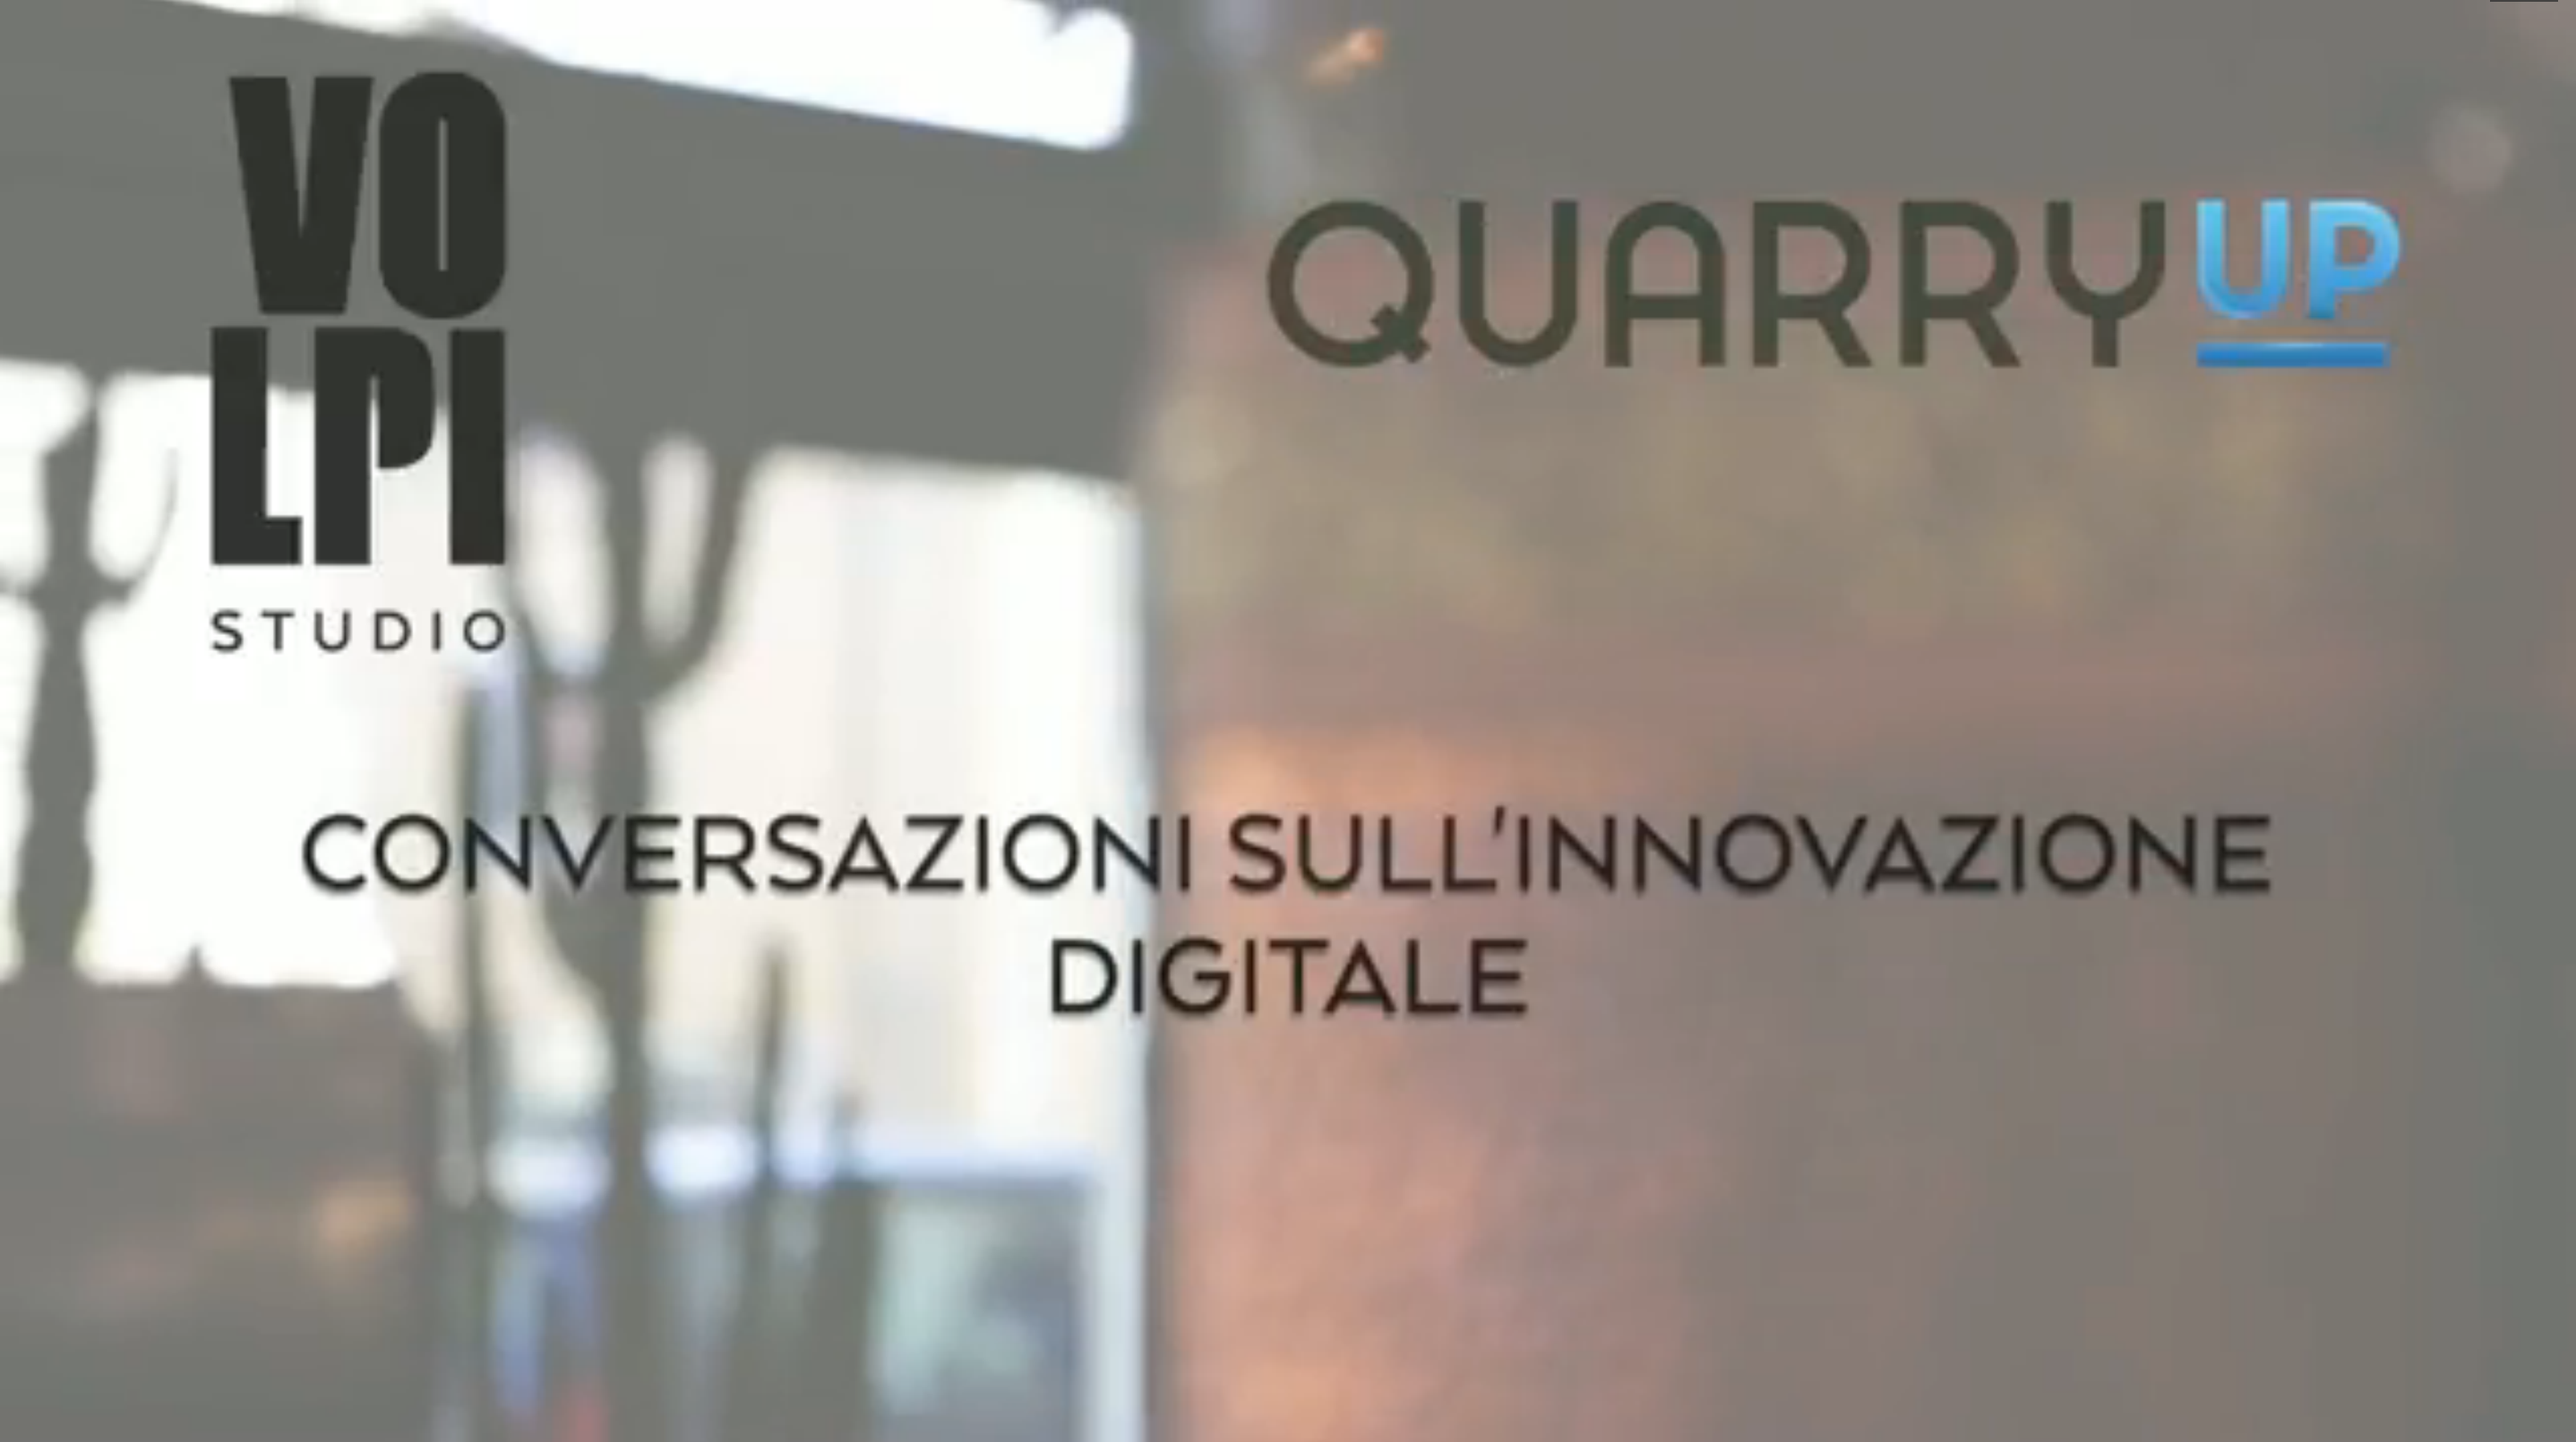 Video: Quarry Up, conversazioni sul digitale